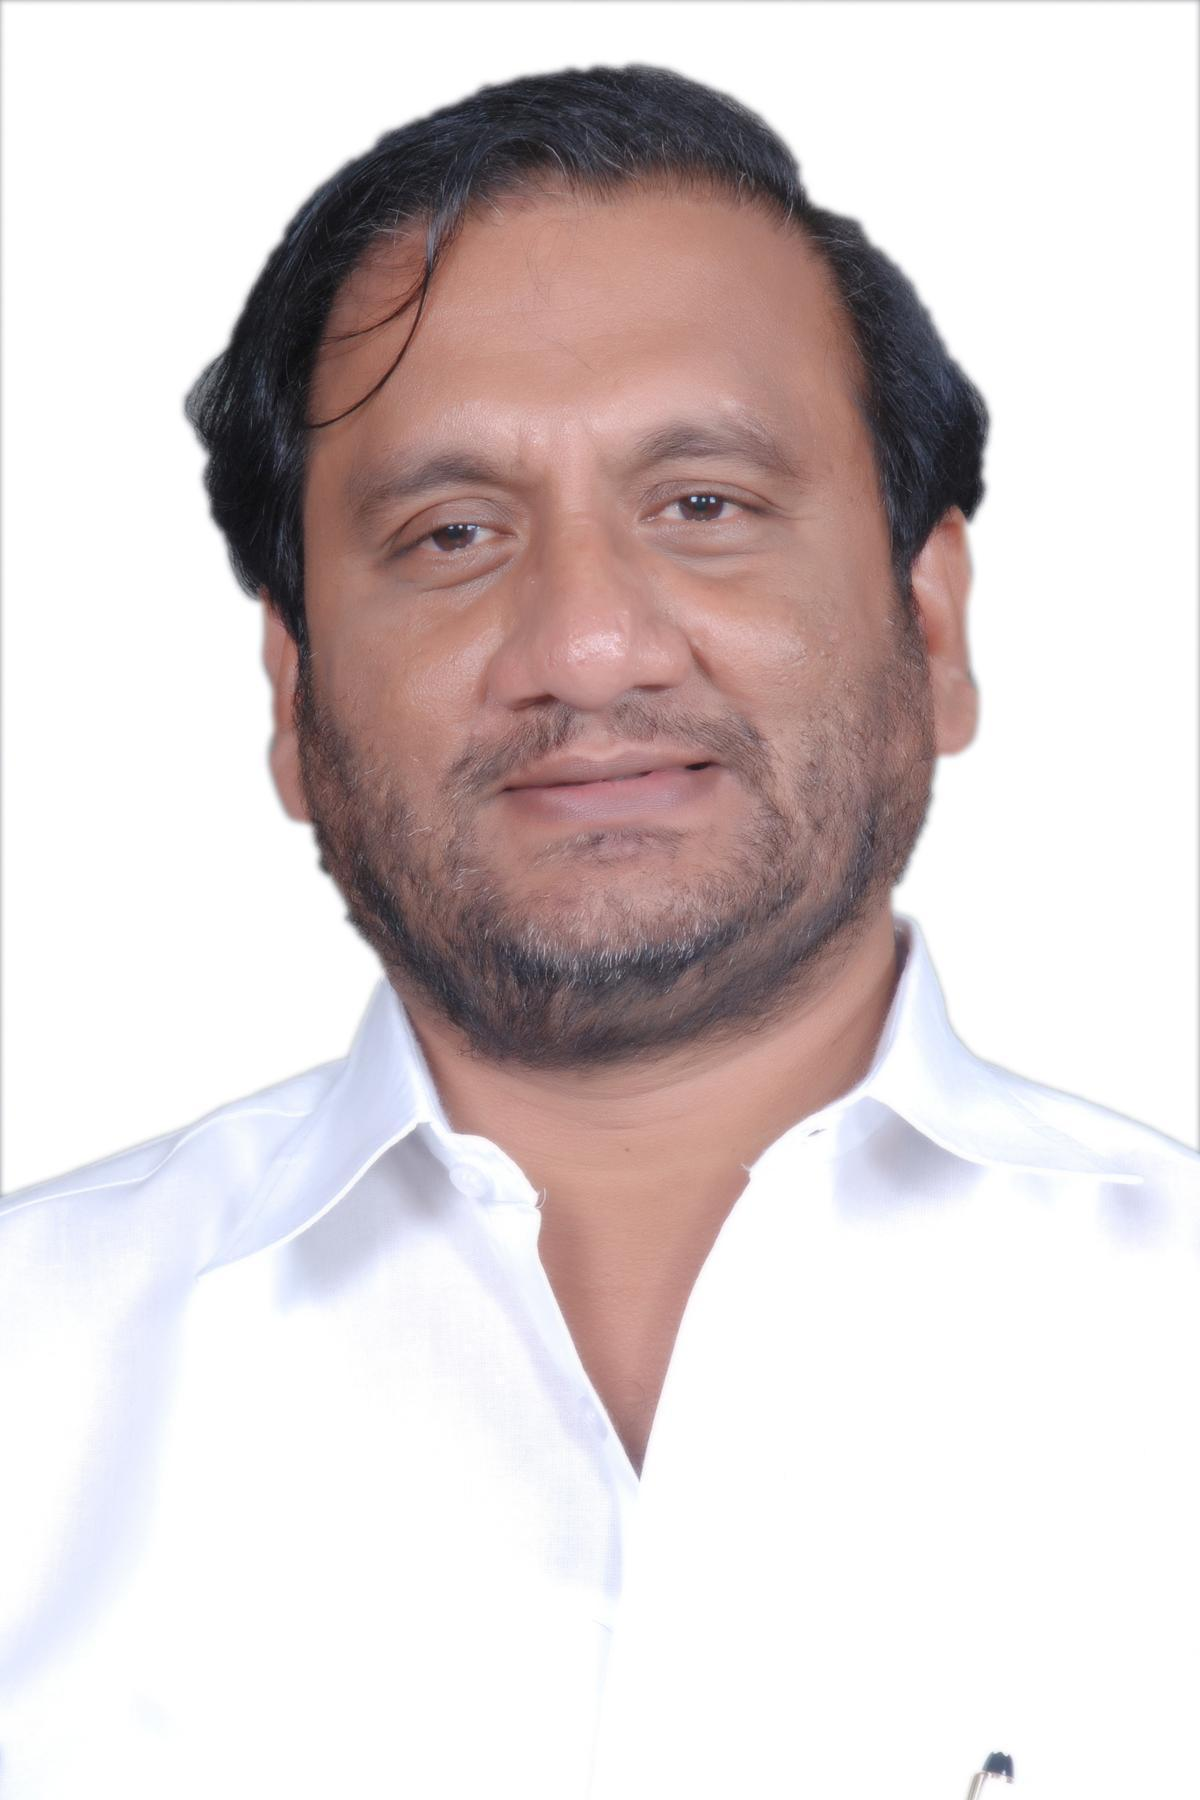 SRI NALLAPAREDDY PRASANNA KUMAR REDDY